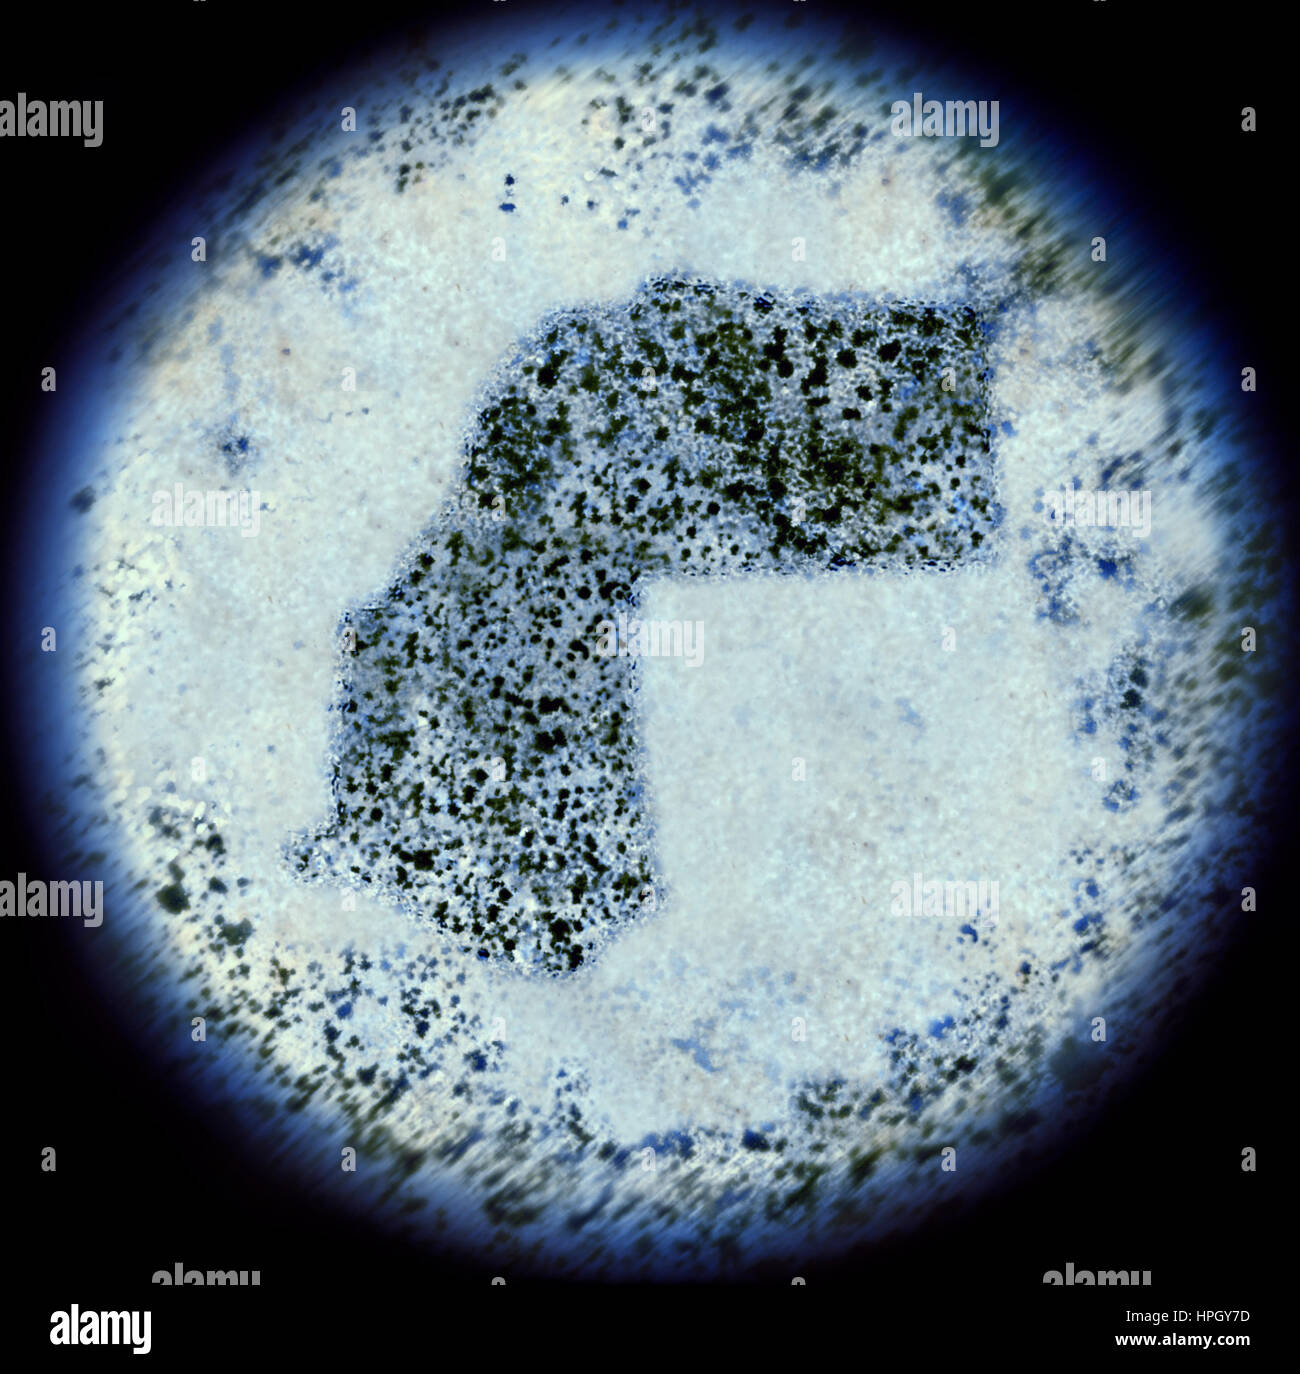 A simulated view through a microscope on bacterias in the shape of Western Sahara.(series) - Stock Image